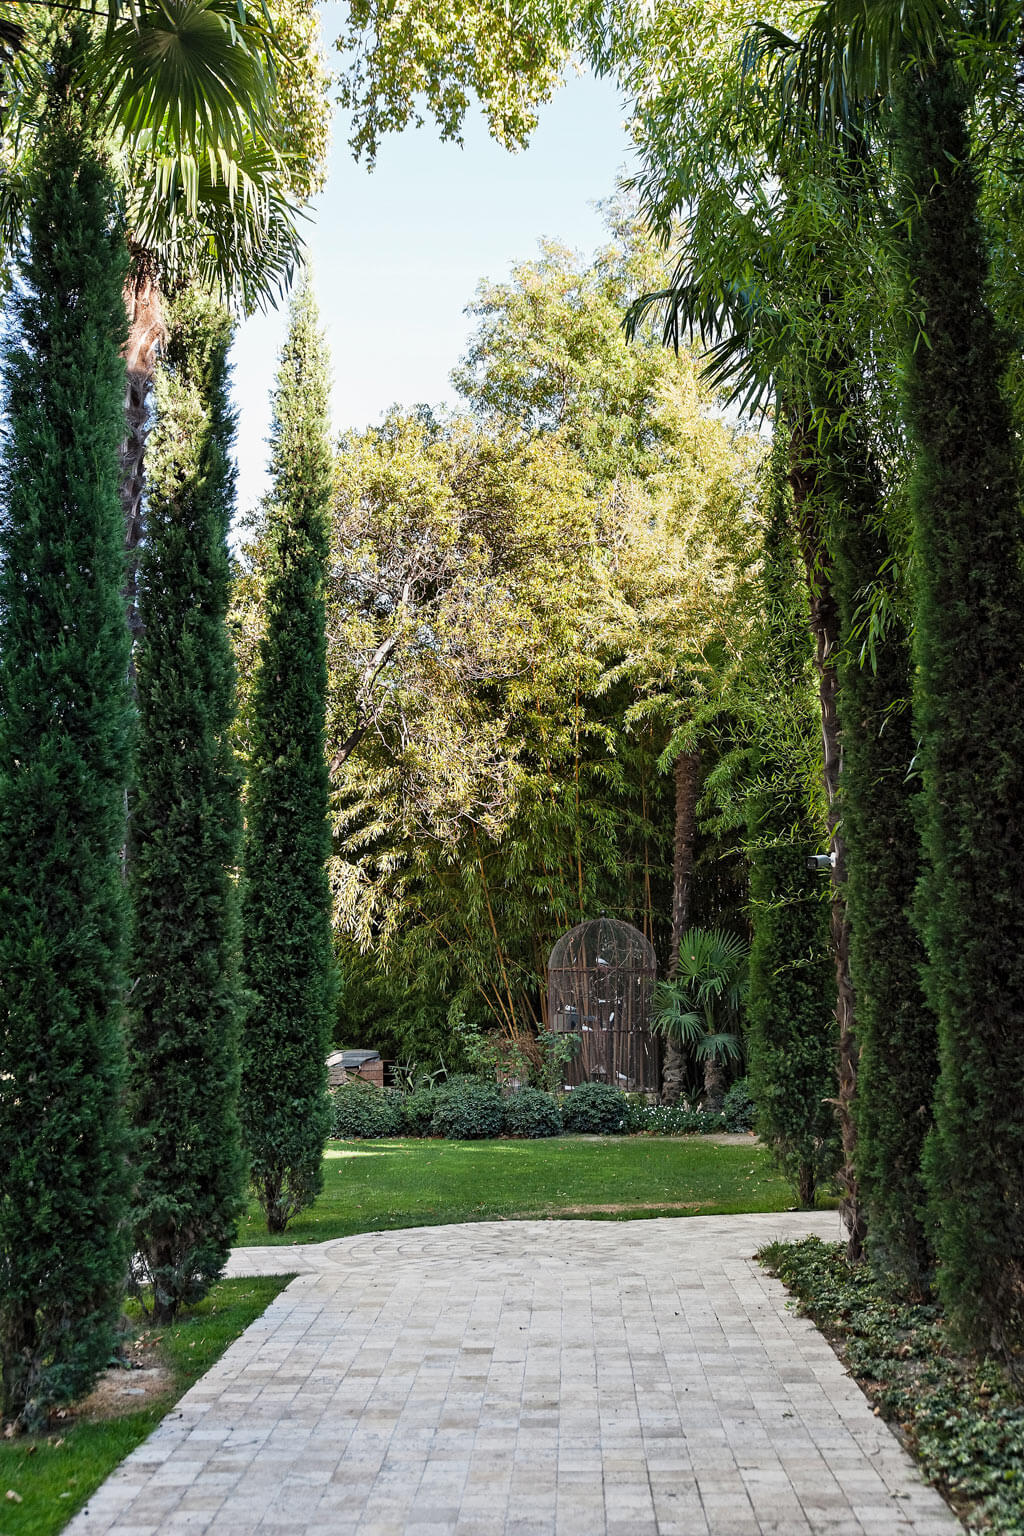 Cypress beauty. Beautiful French country garden inspiration from a luxurious property in the South of France. Breathtaking 19th century restored French chateau with largest private garden in Avignon. Avignon Hôtel Particulier. Photo: Haven In.